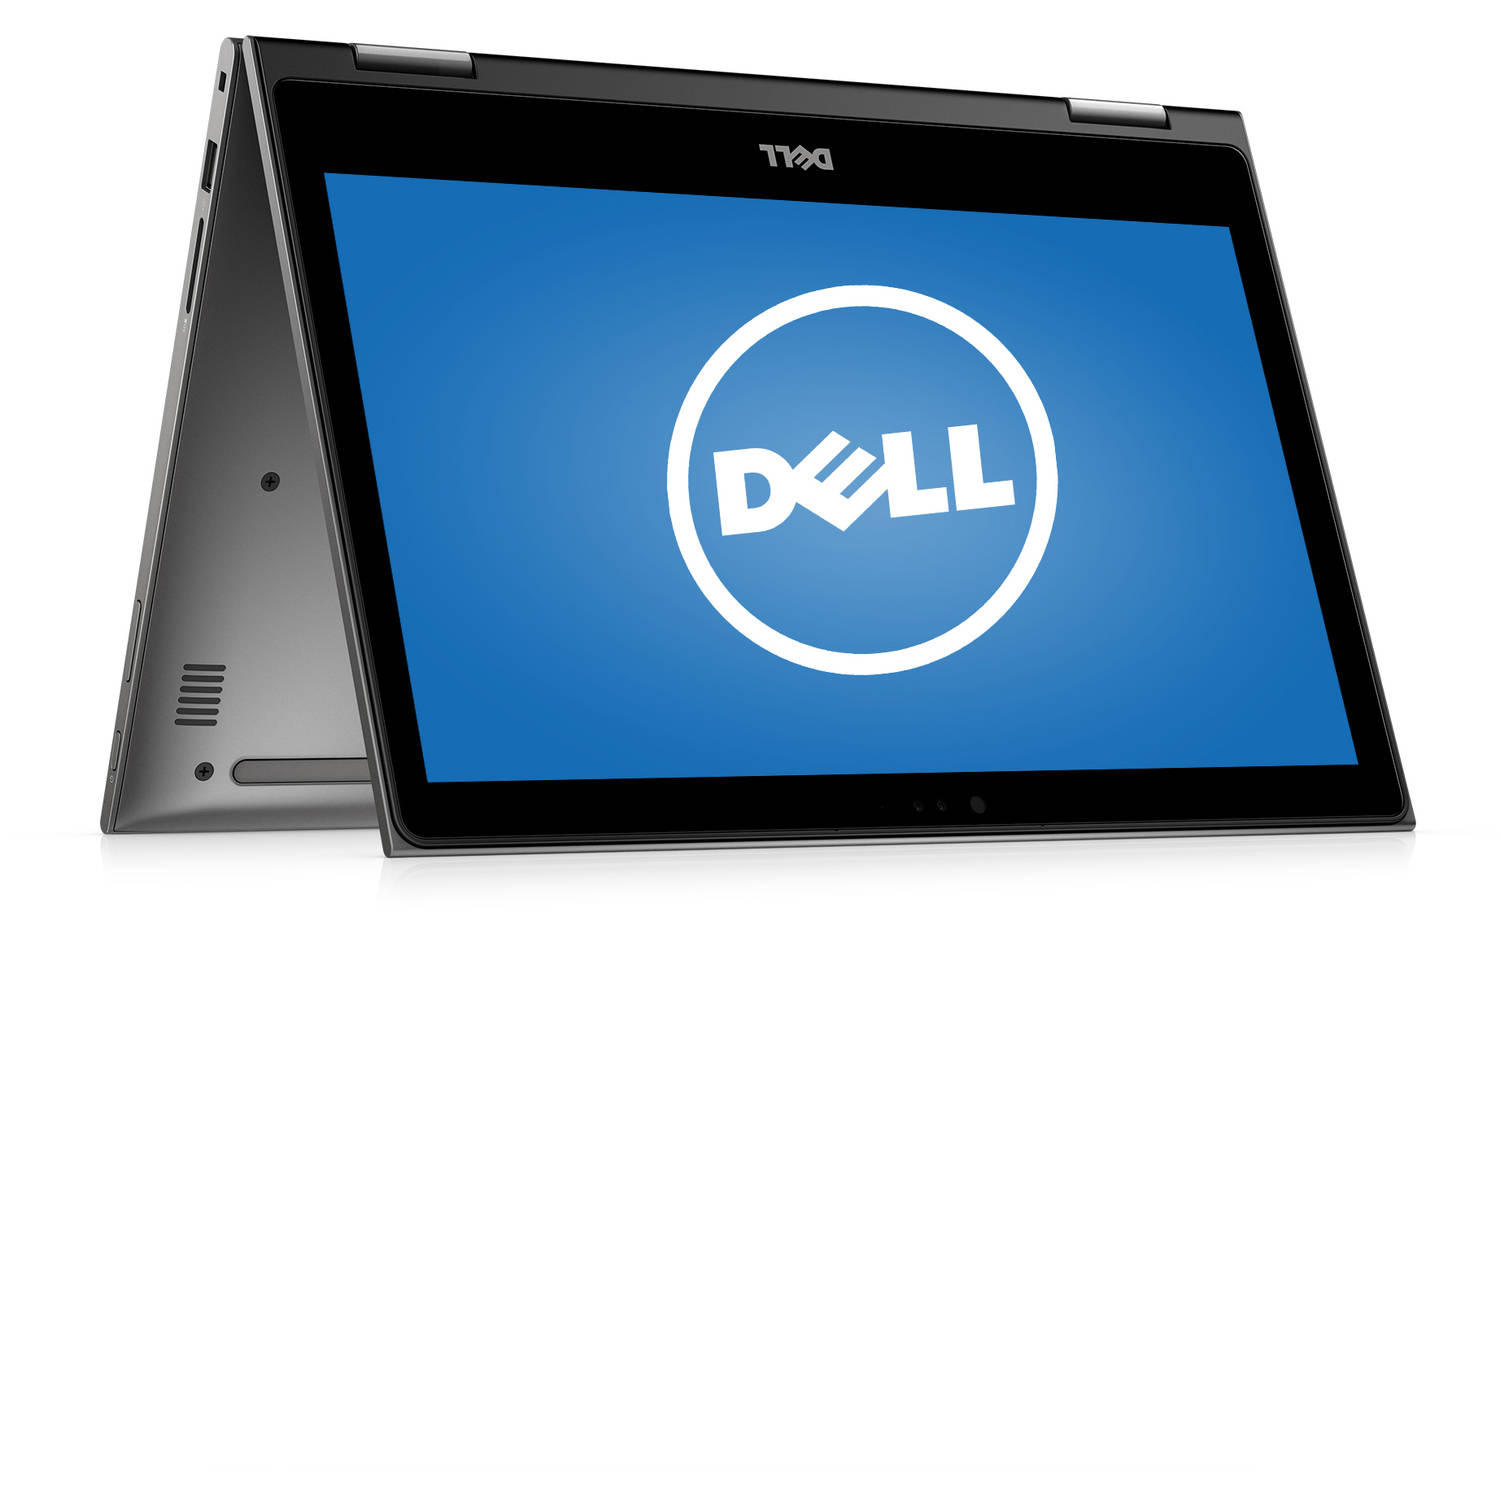 "Dell i5368-8833GRY Inspiron 13 5000 13.3"" Laptop, touch screen, 2-in-1, Windows 10 Home, Intel Core i7-6500U Processor, 8GB RAM, 1TB Hard Drive"